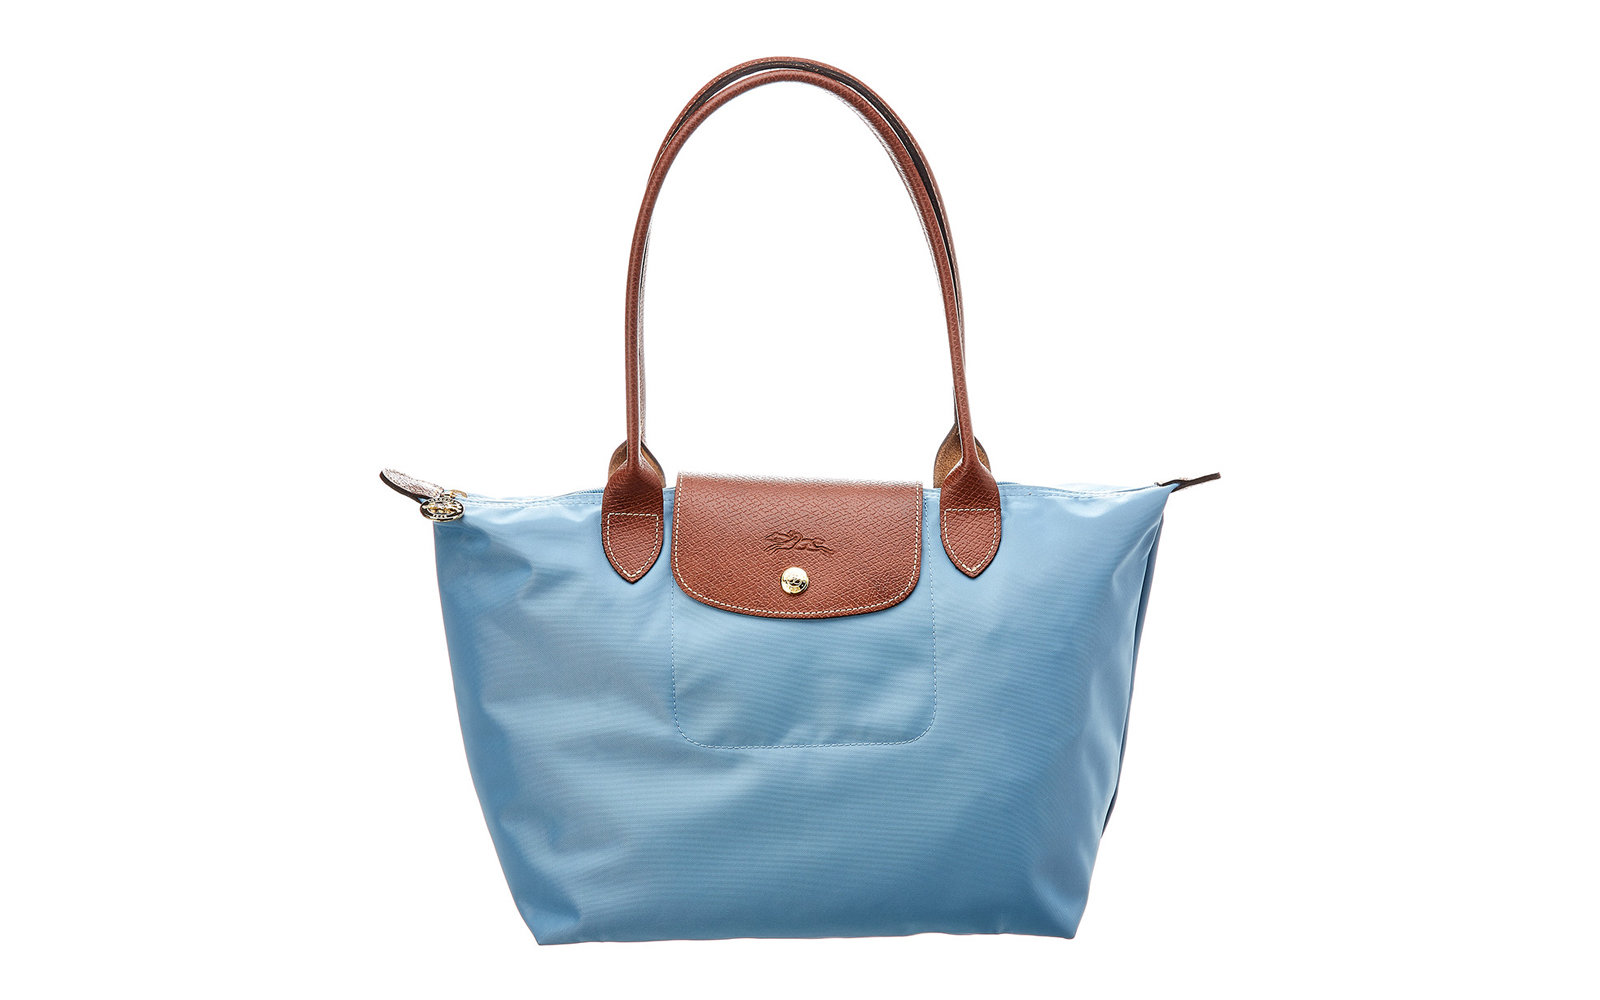 Longchamp Le Pliage Small Nylon Long Handle Tote in Artic